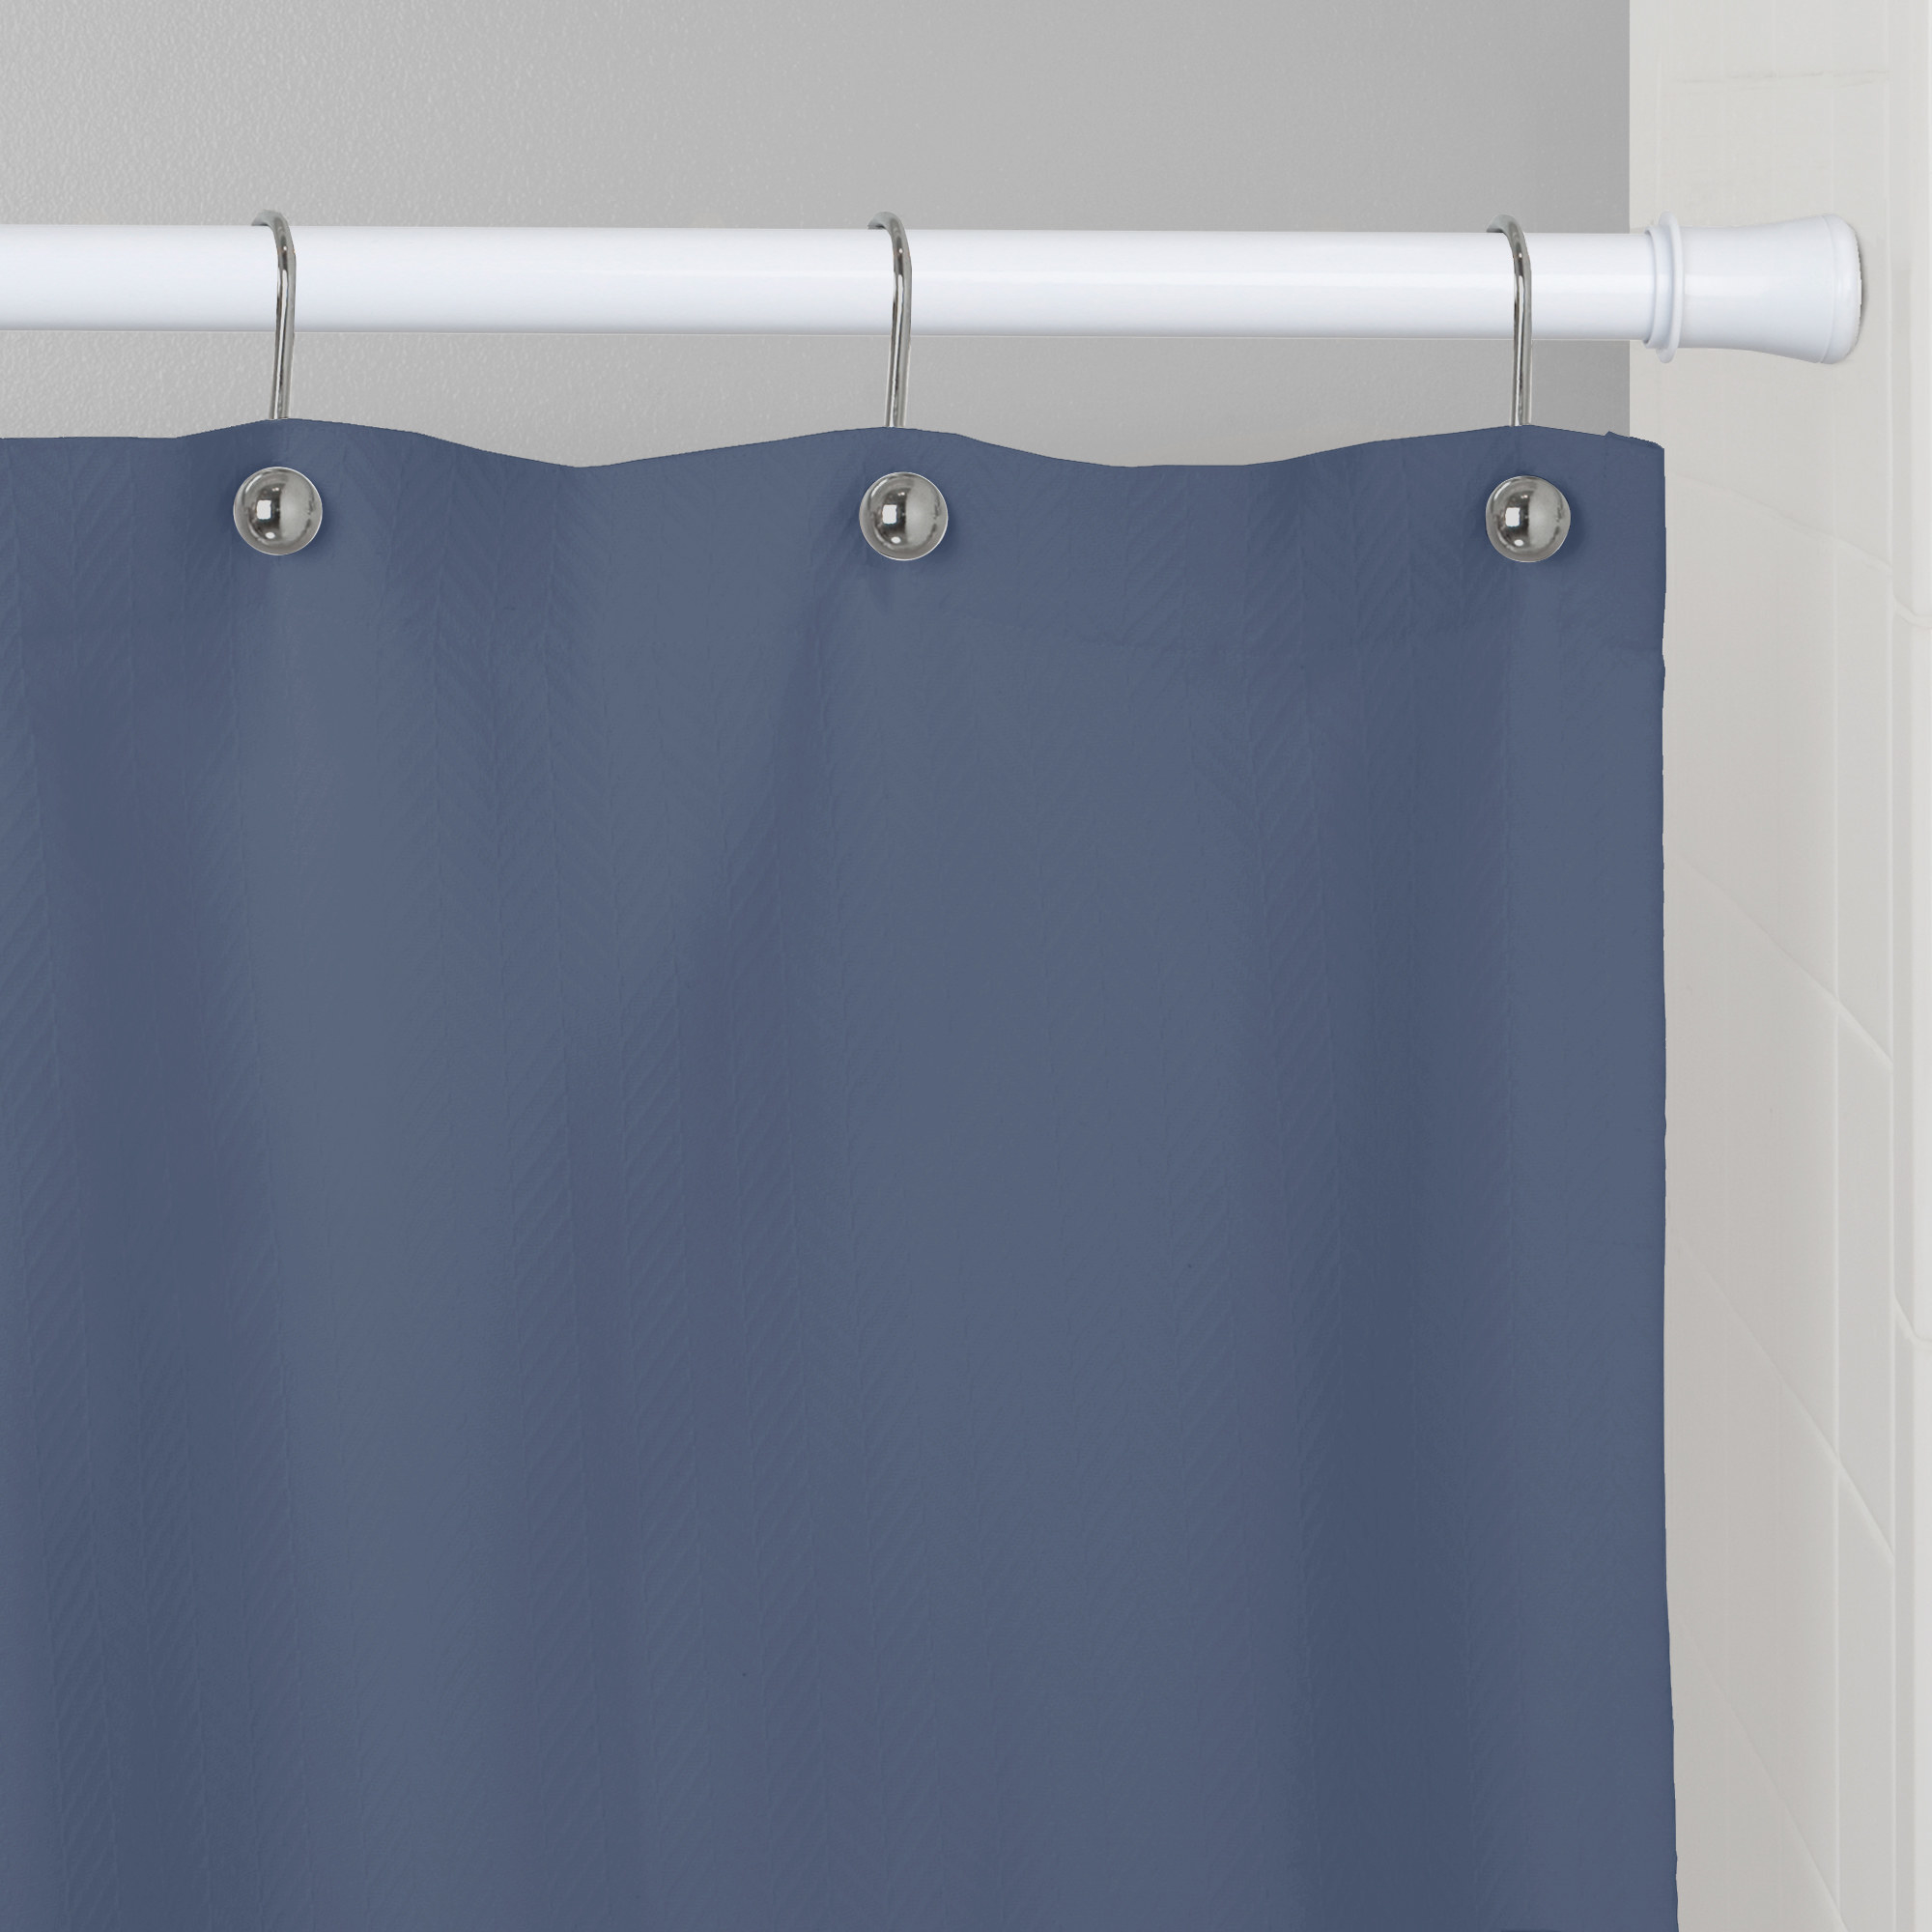 An easy-hang shower curtain tension rod